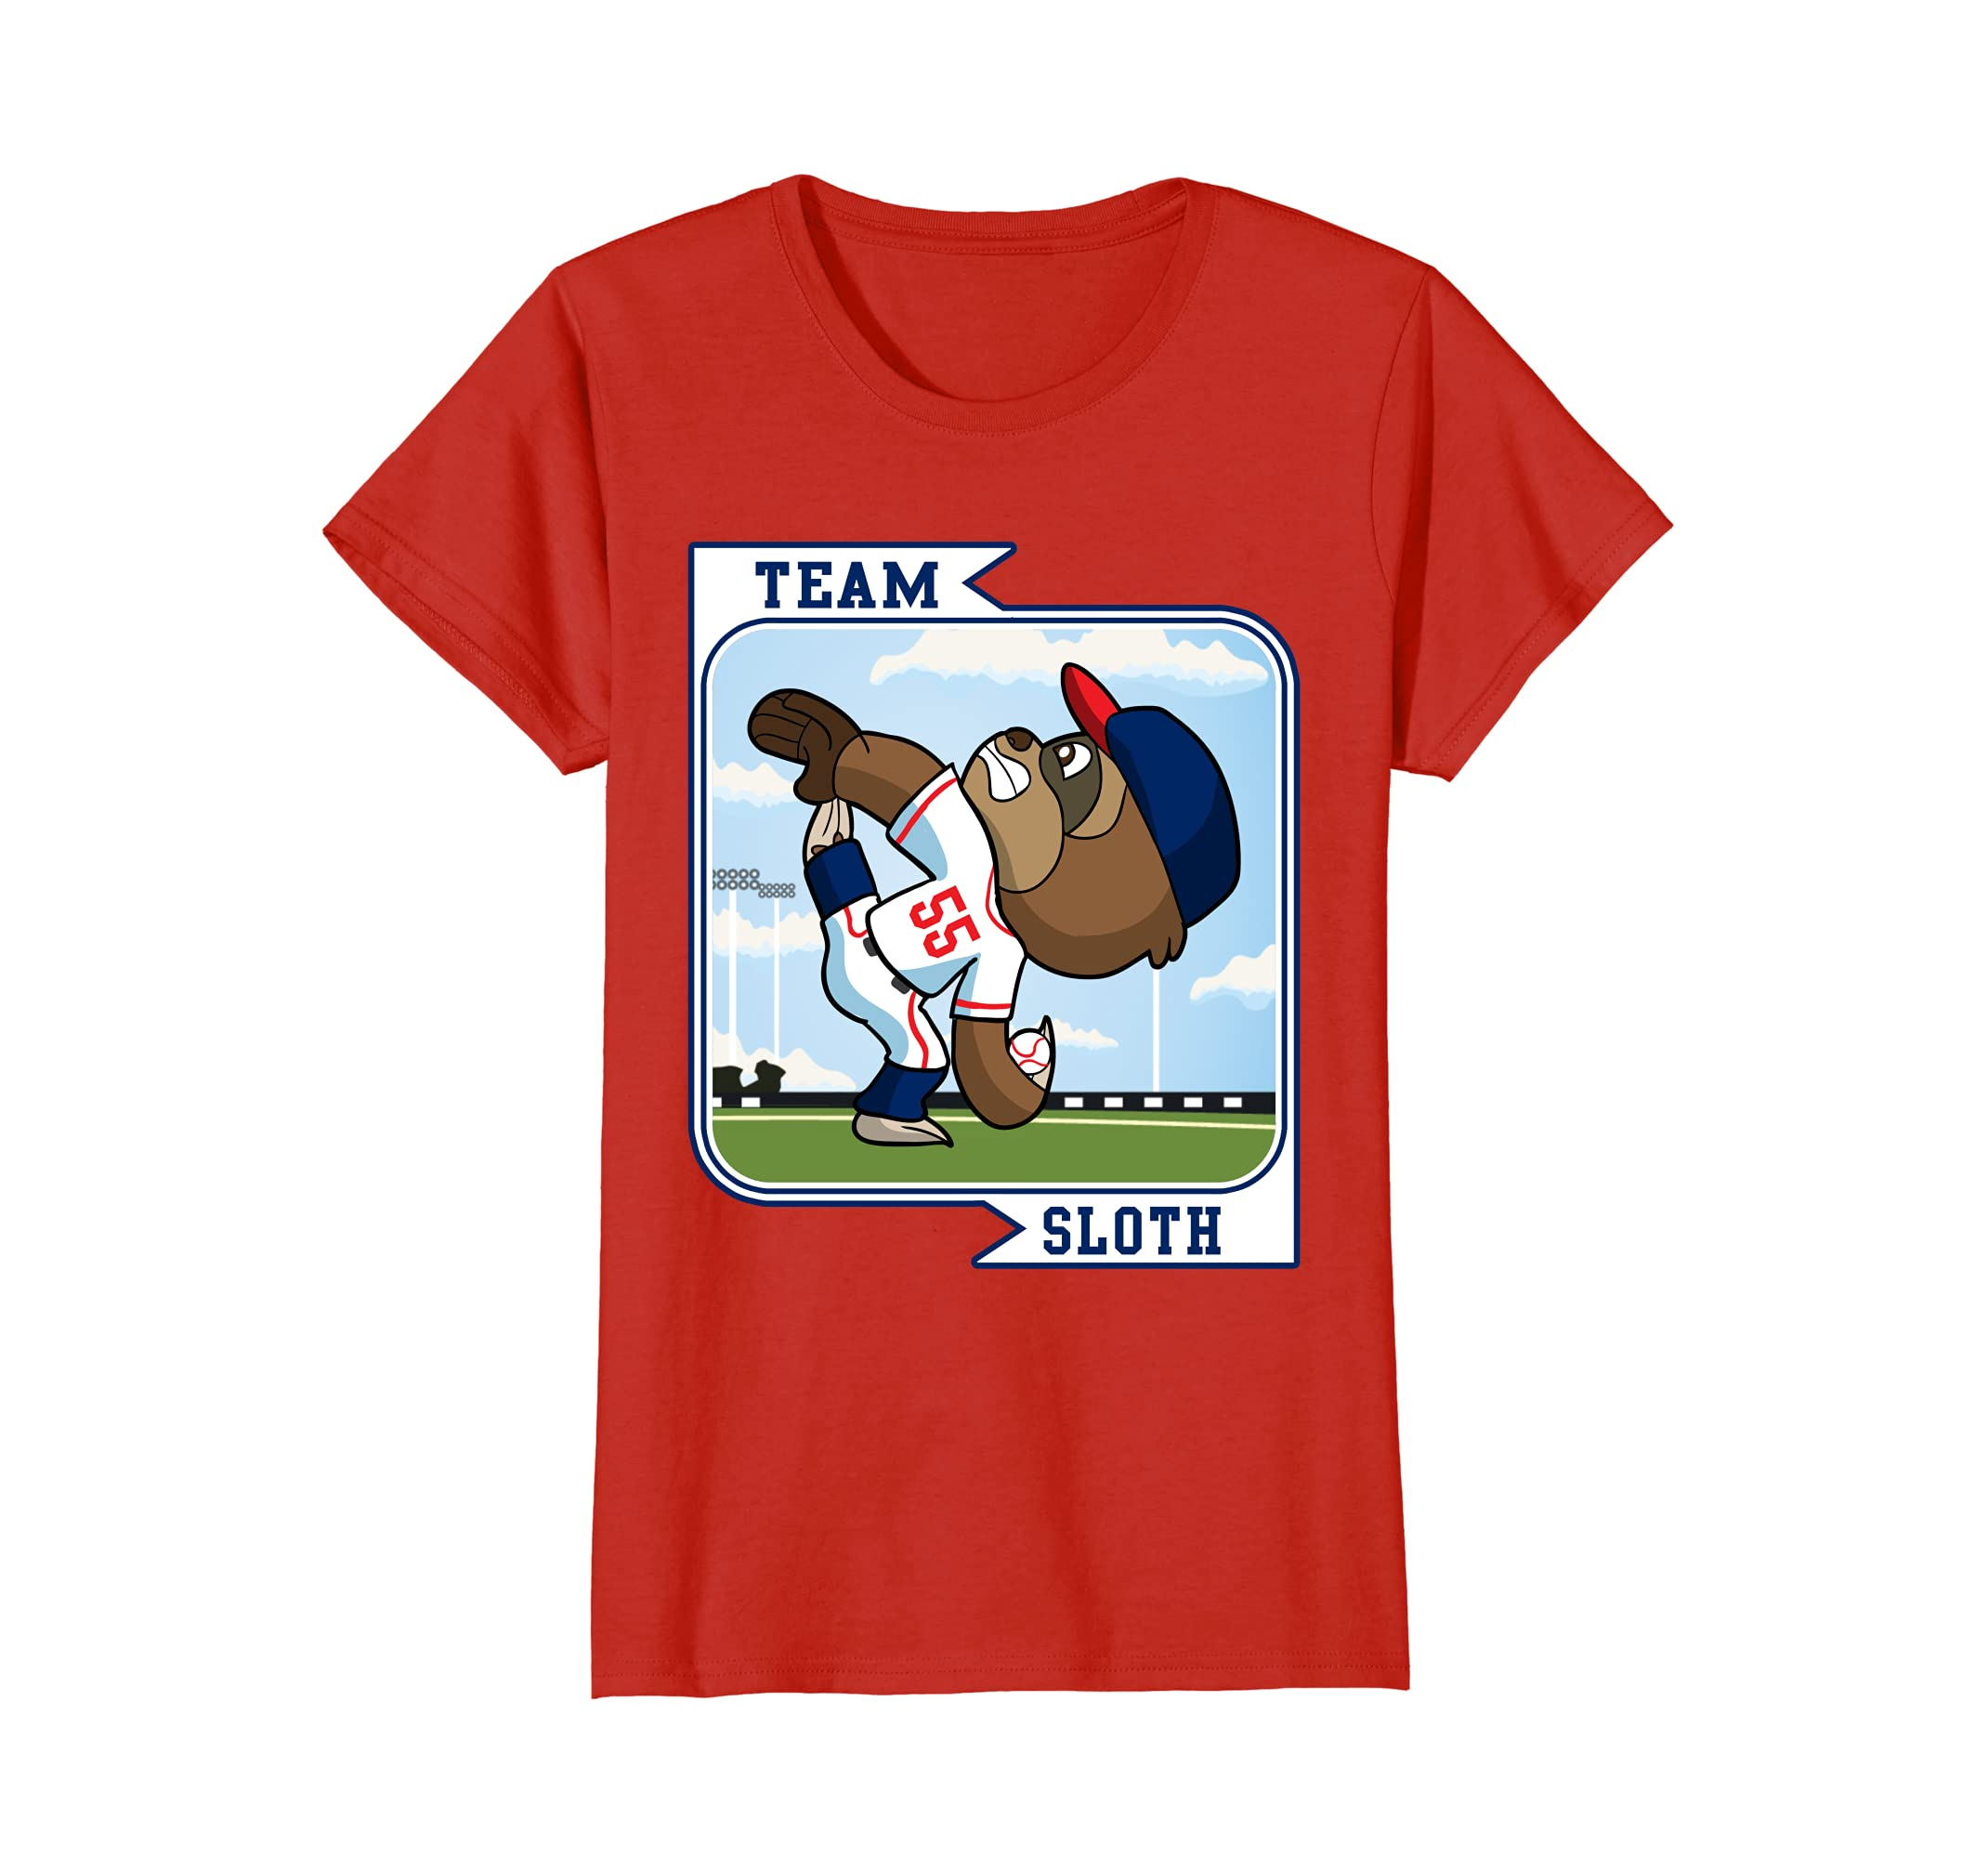 c0b0e59c1 Amazon.com: Sloth T-Shirt Baseball Shirt Gift: Clothing